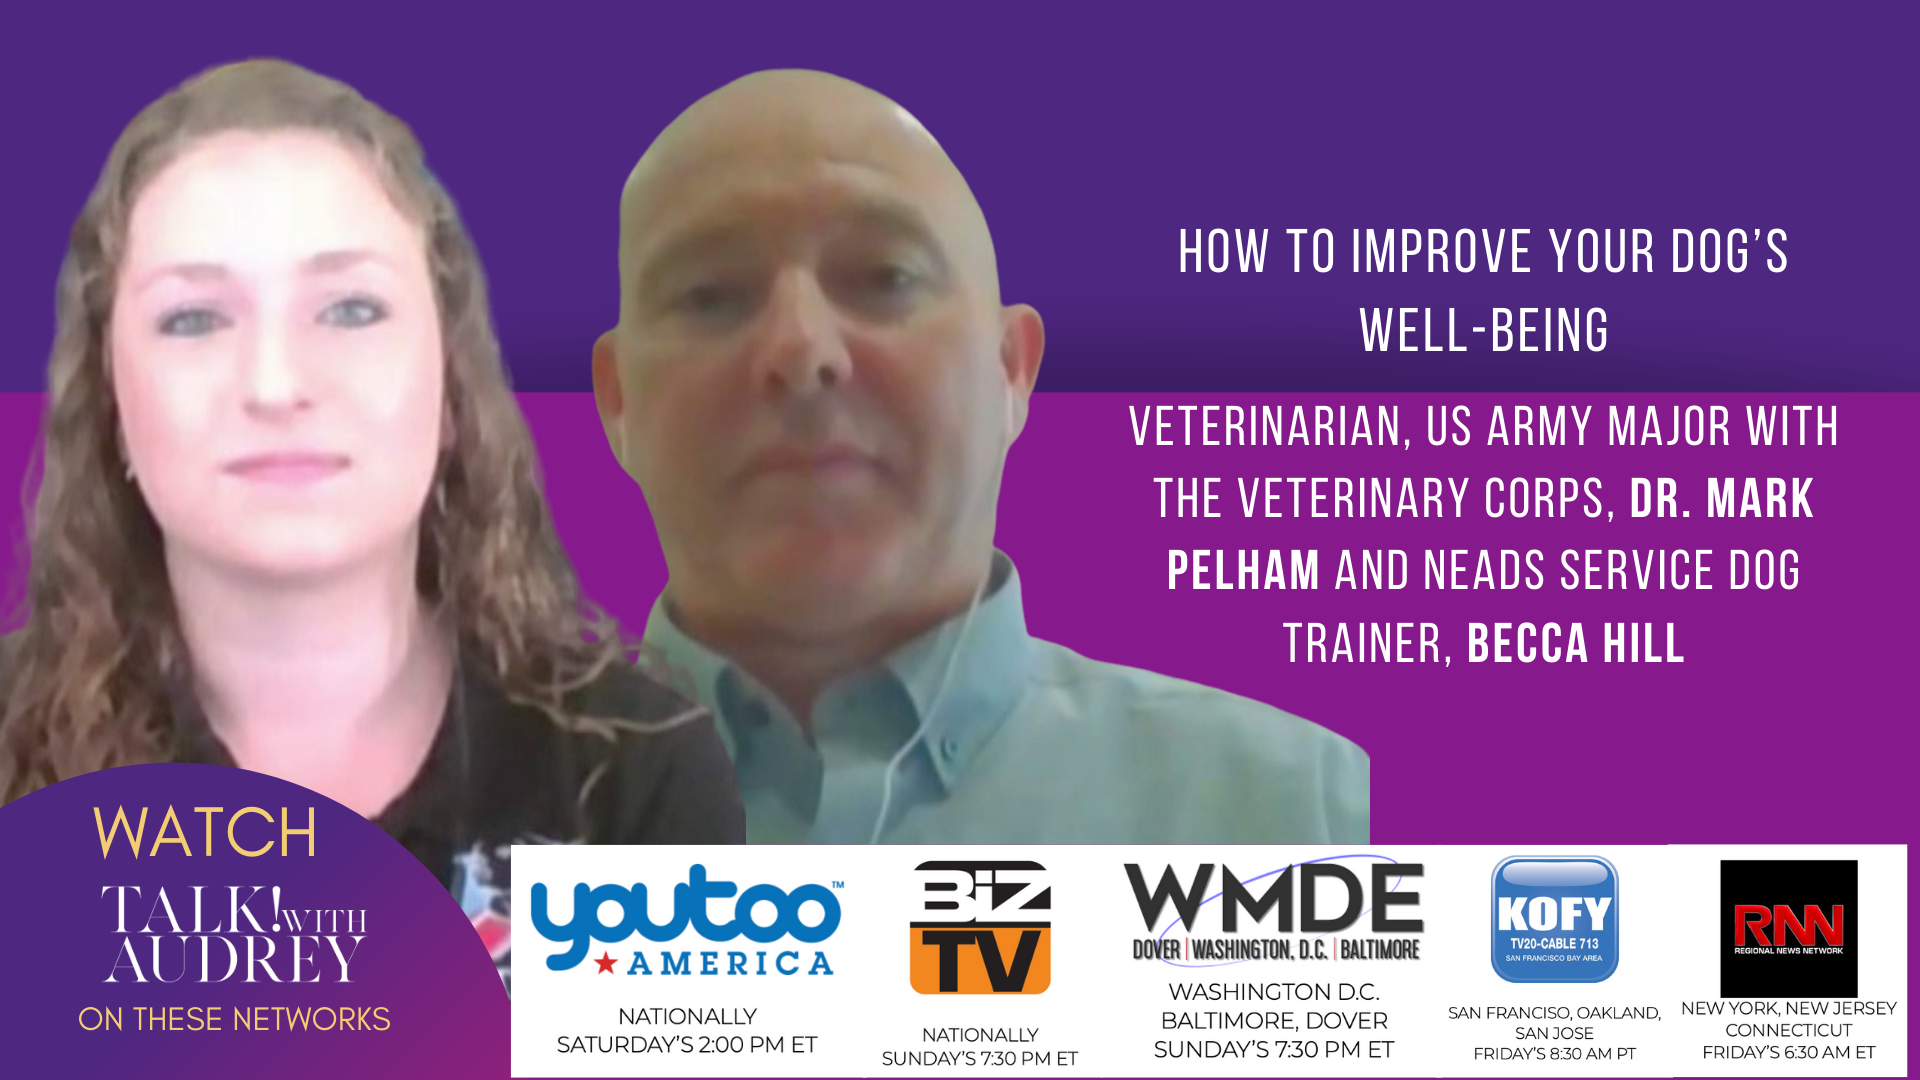 How To Improve Your Dog's  Well-Being – TALK! with AUDREY TV